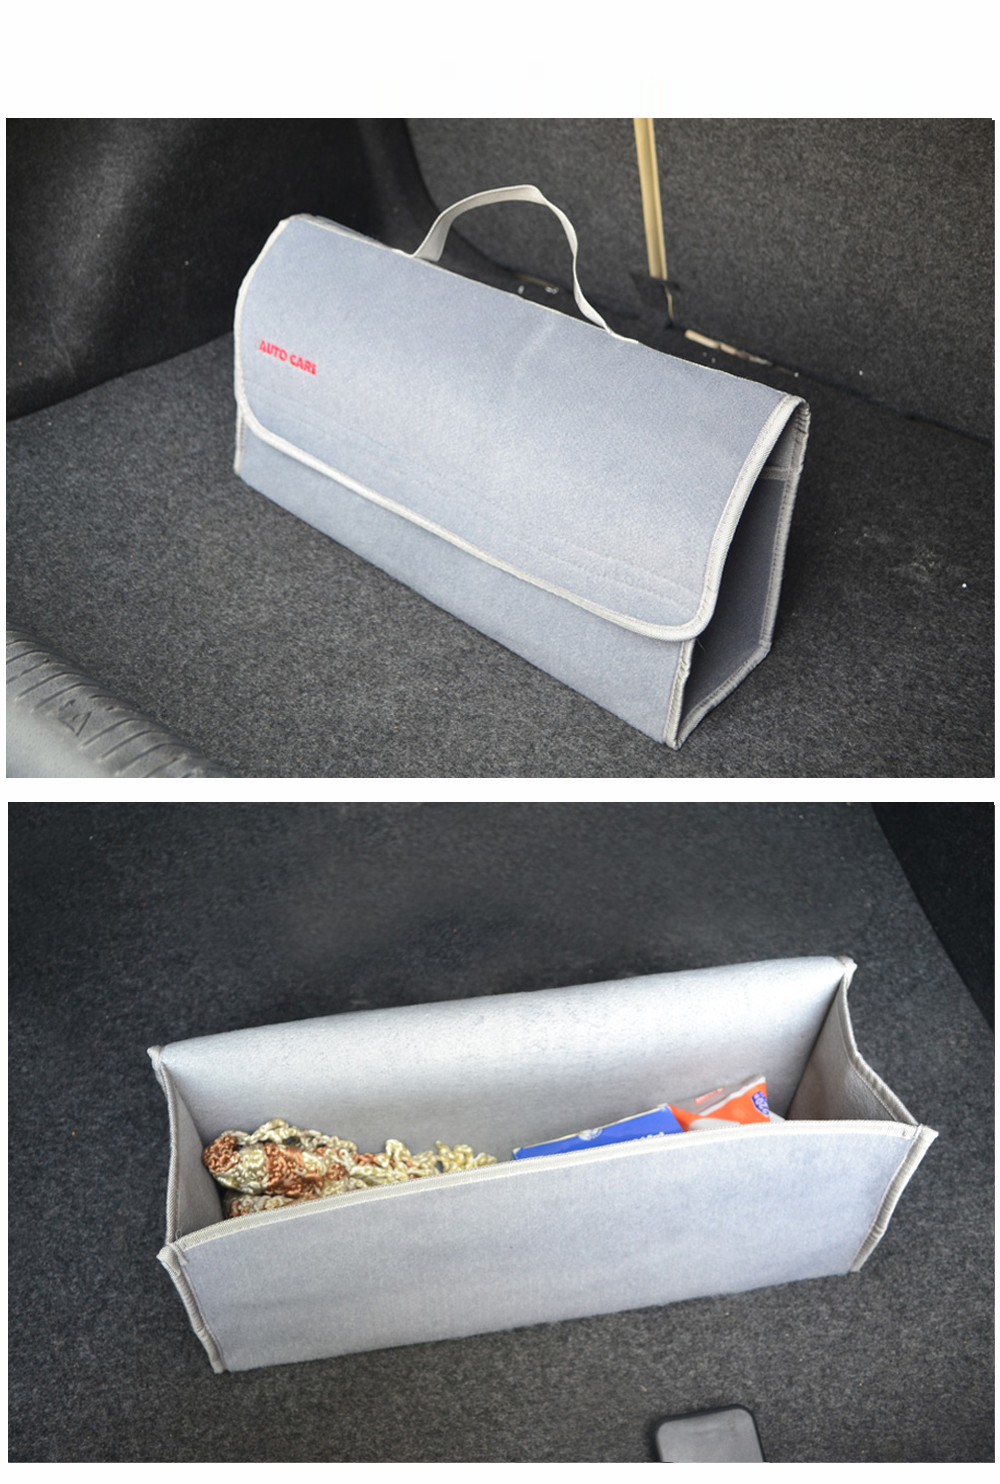 Auto Care Large Car Smart Tool Bag Grey Trunk Storage Organizer Bag Built in strong Velcrofix system holds to car carpet 6